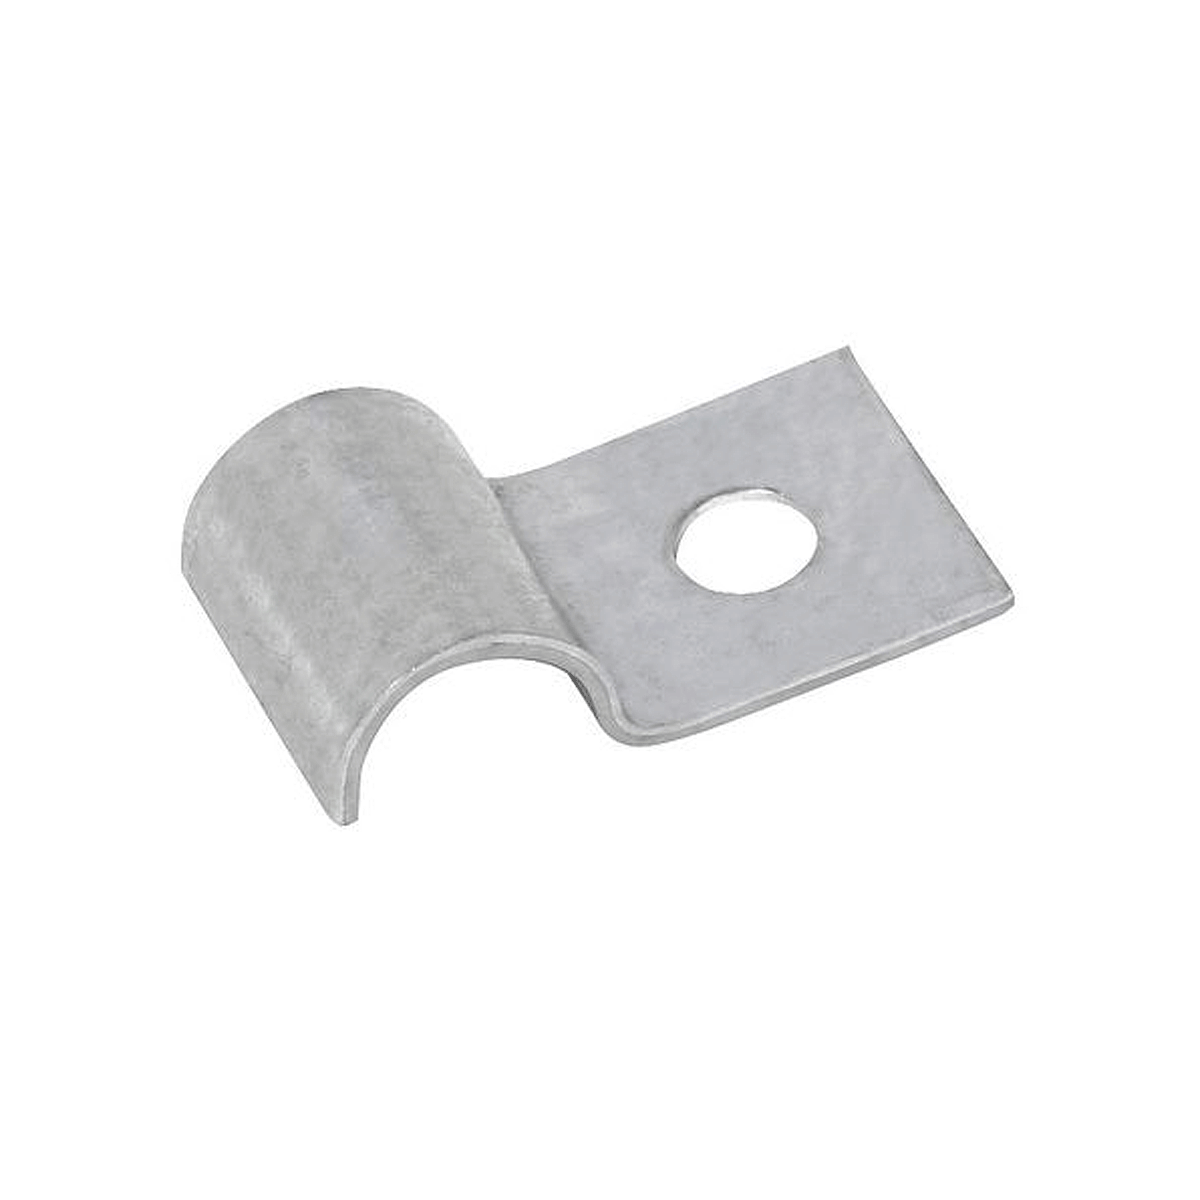 Secure Surface Clips (Bag of 24)